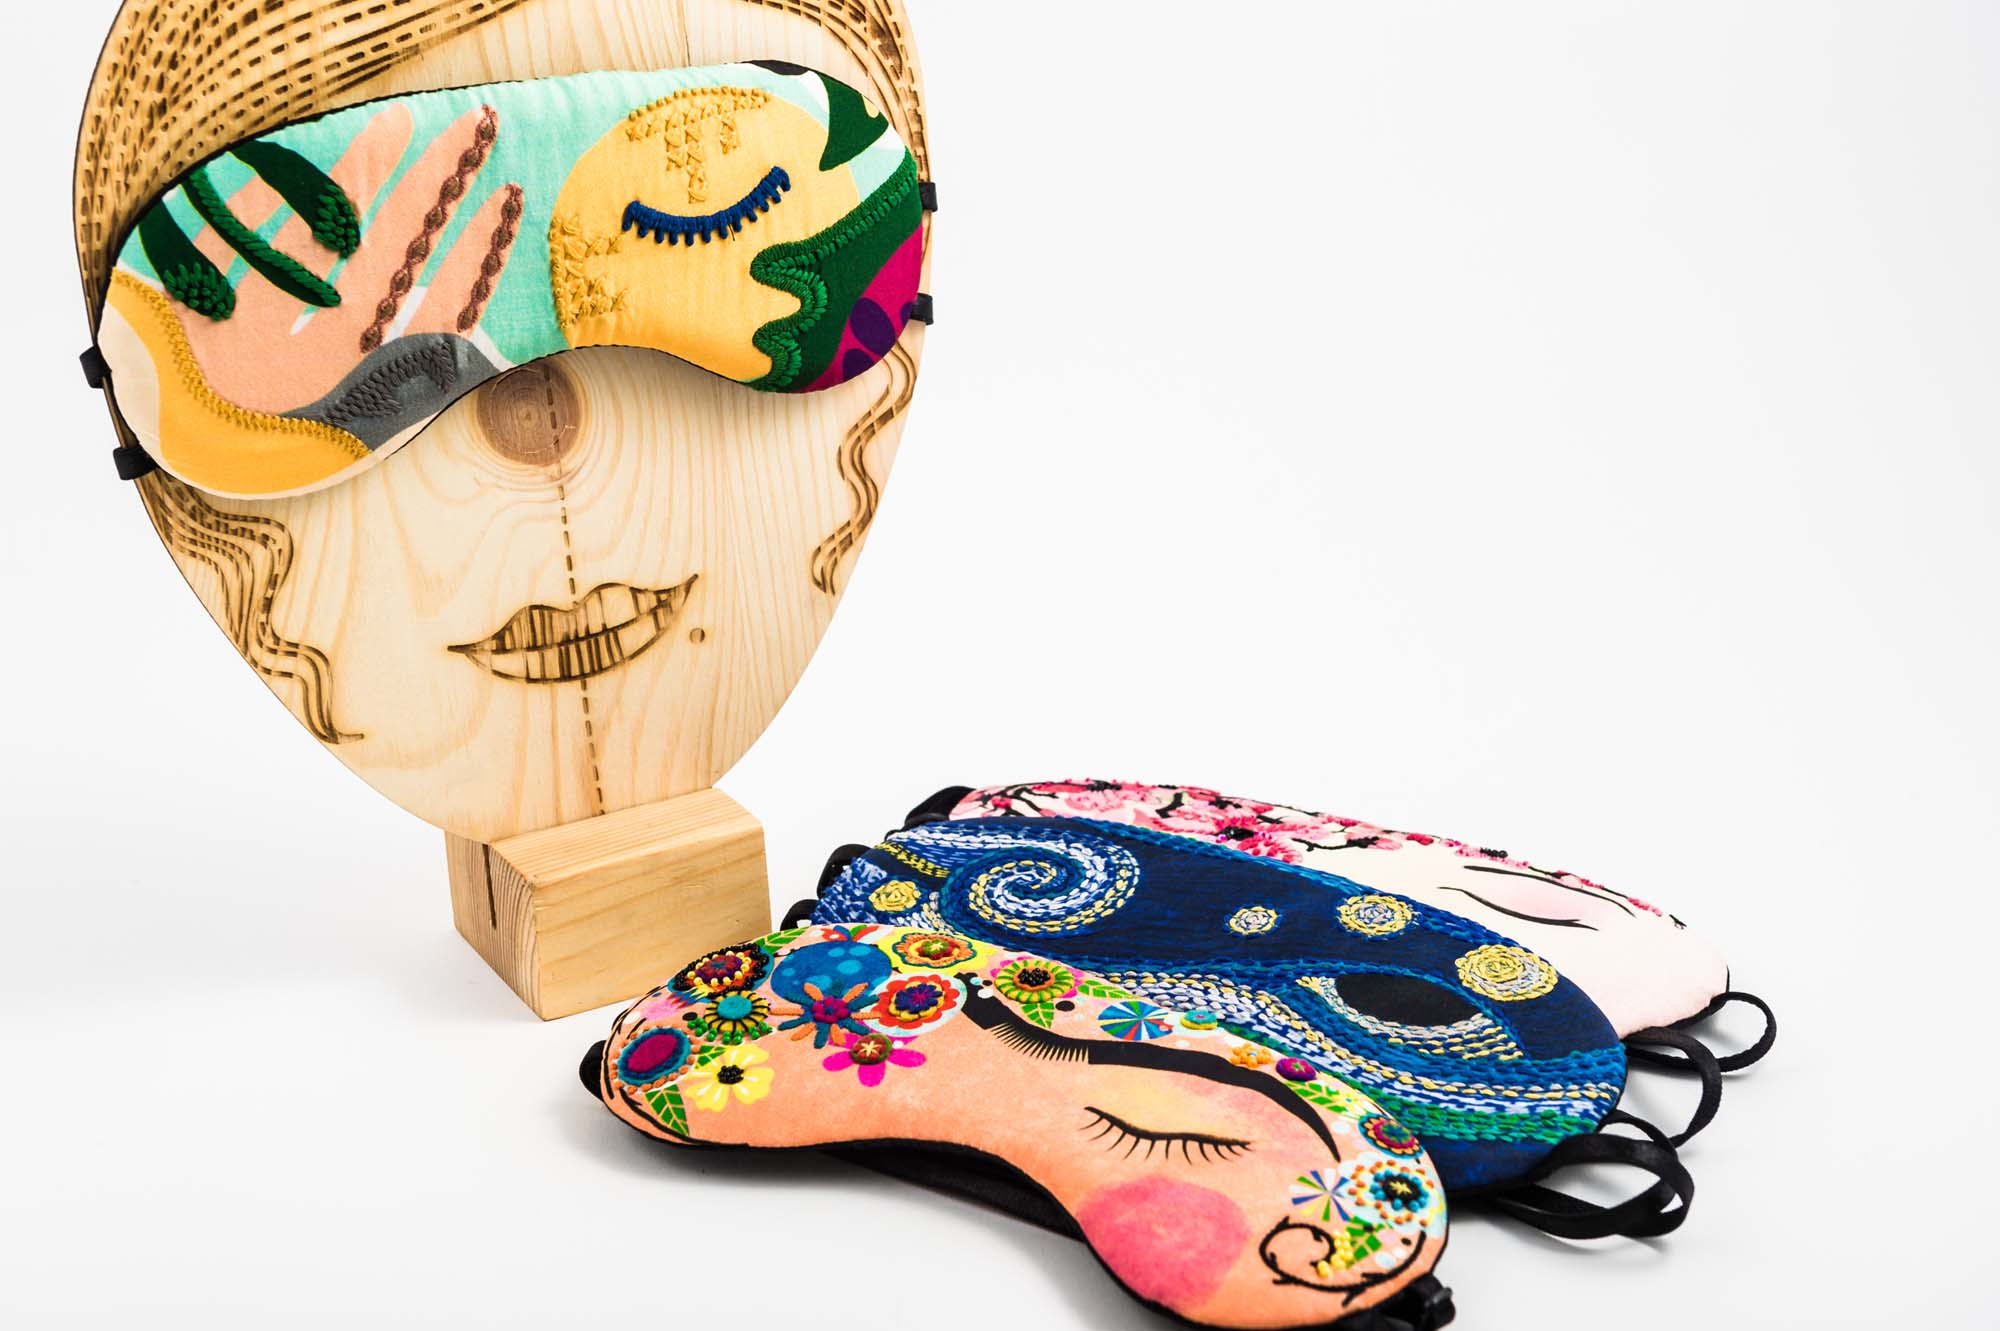 Embroidered Silk Artists Sleep Masks